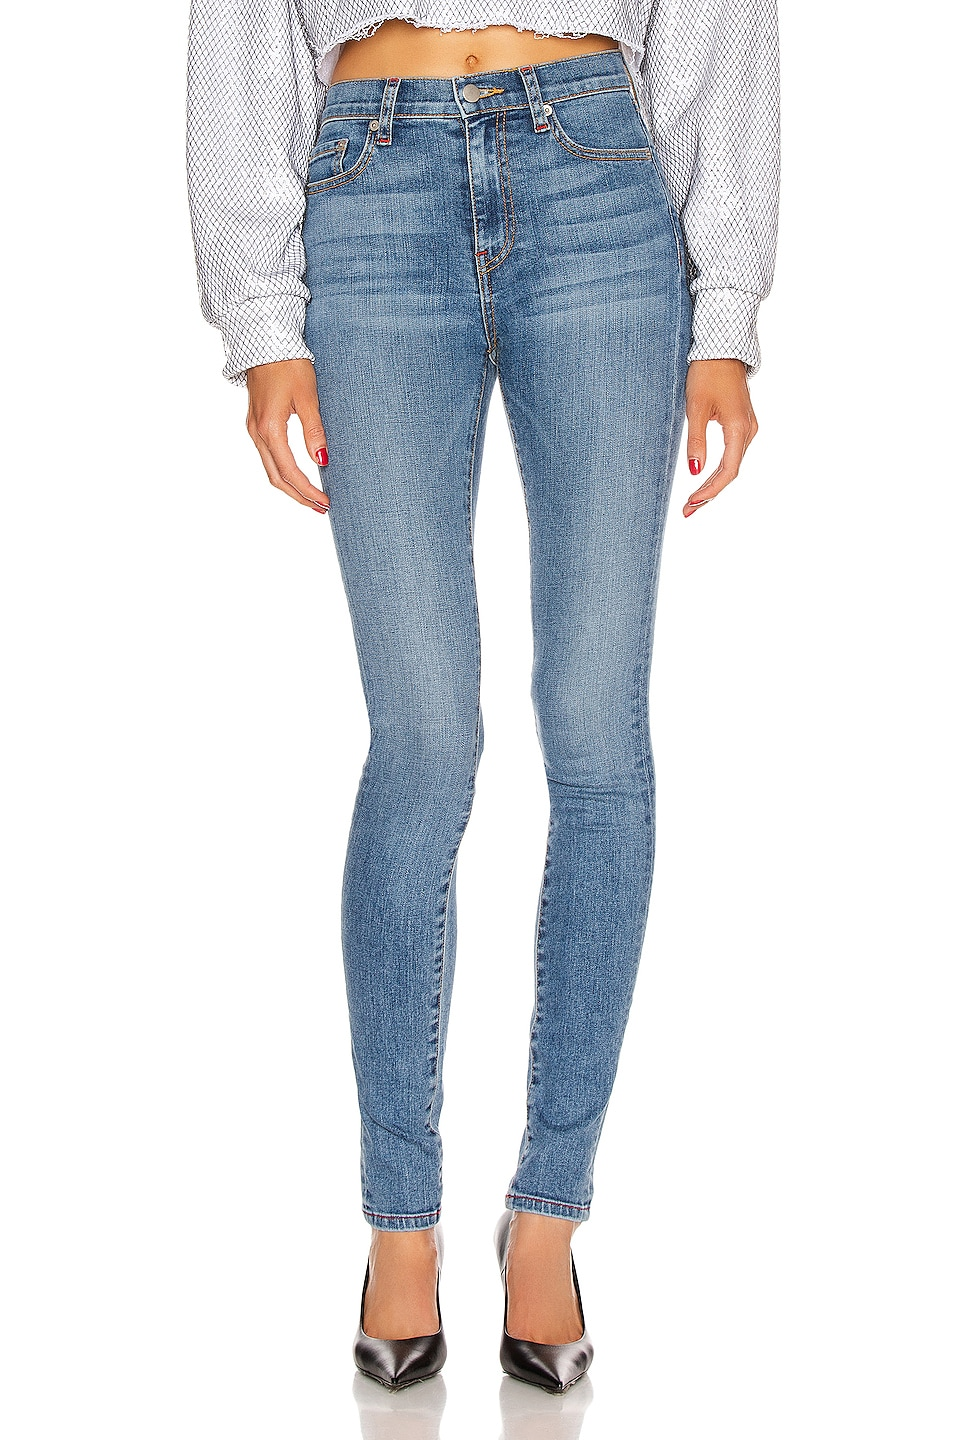 Image 1 of Frankie B Mariah High Rise Skinny in Indigo Medium Blue